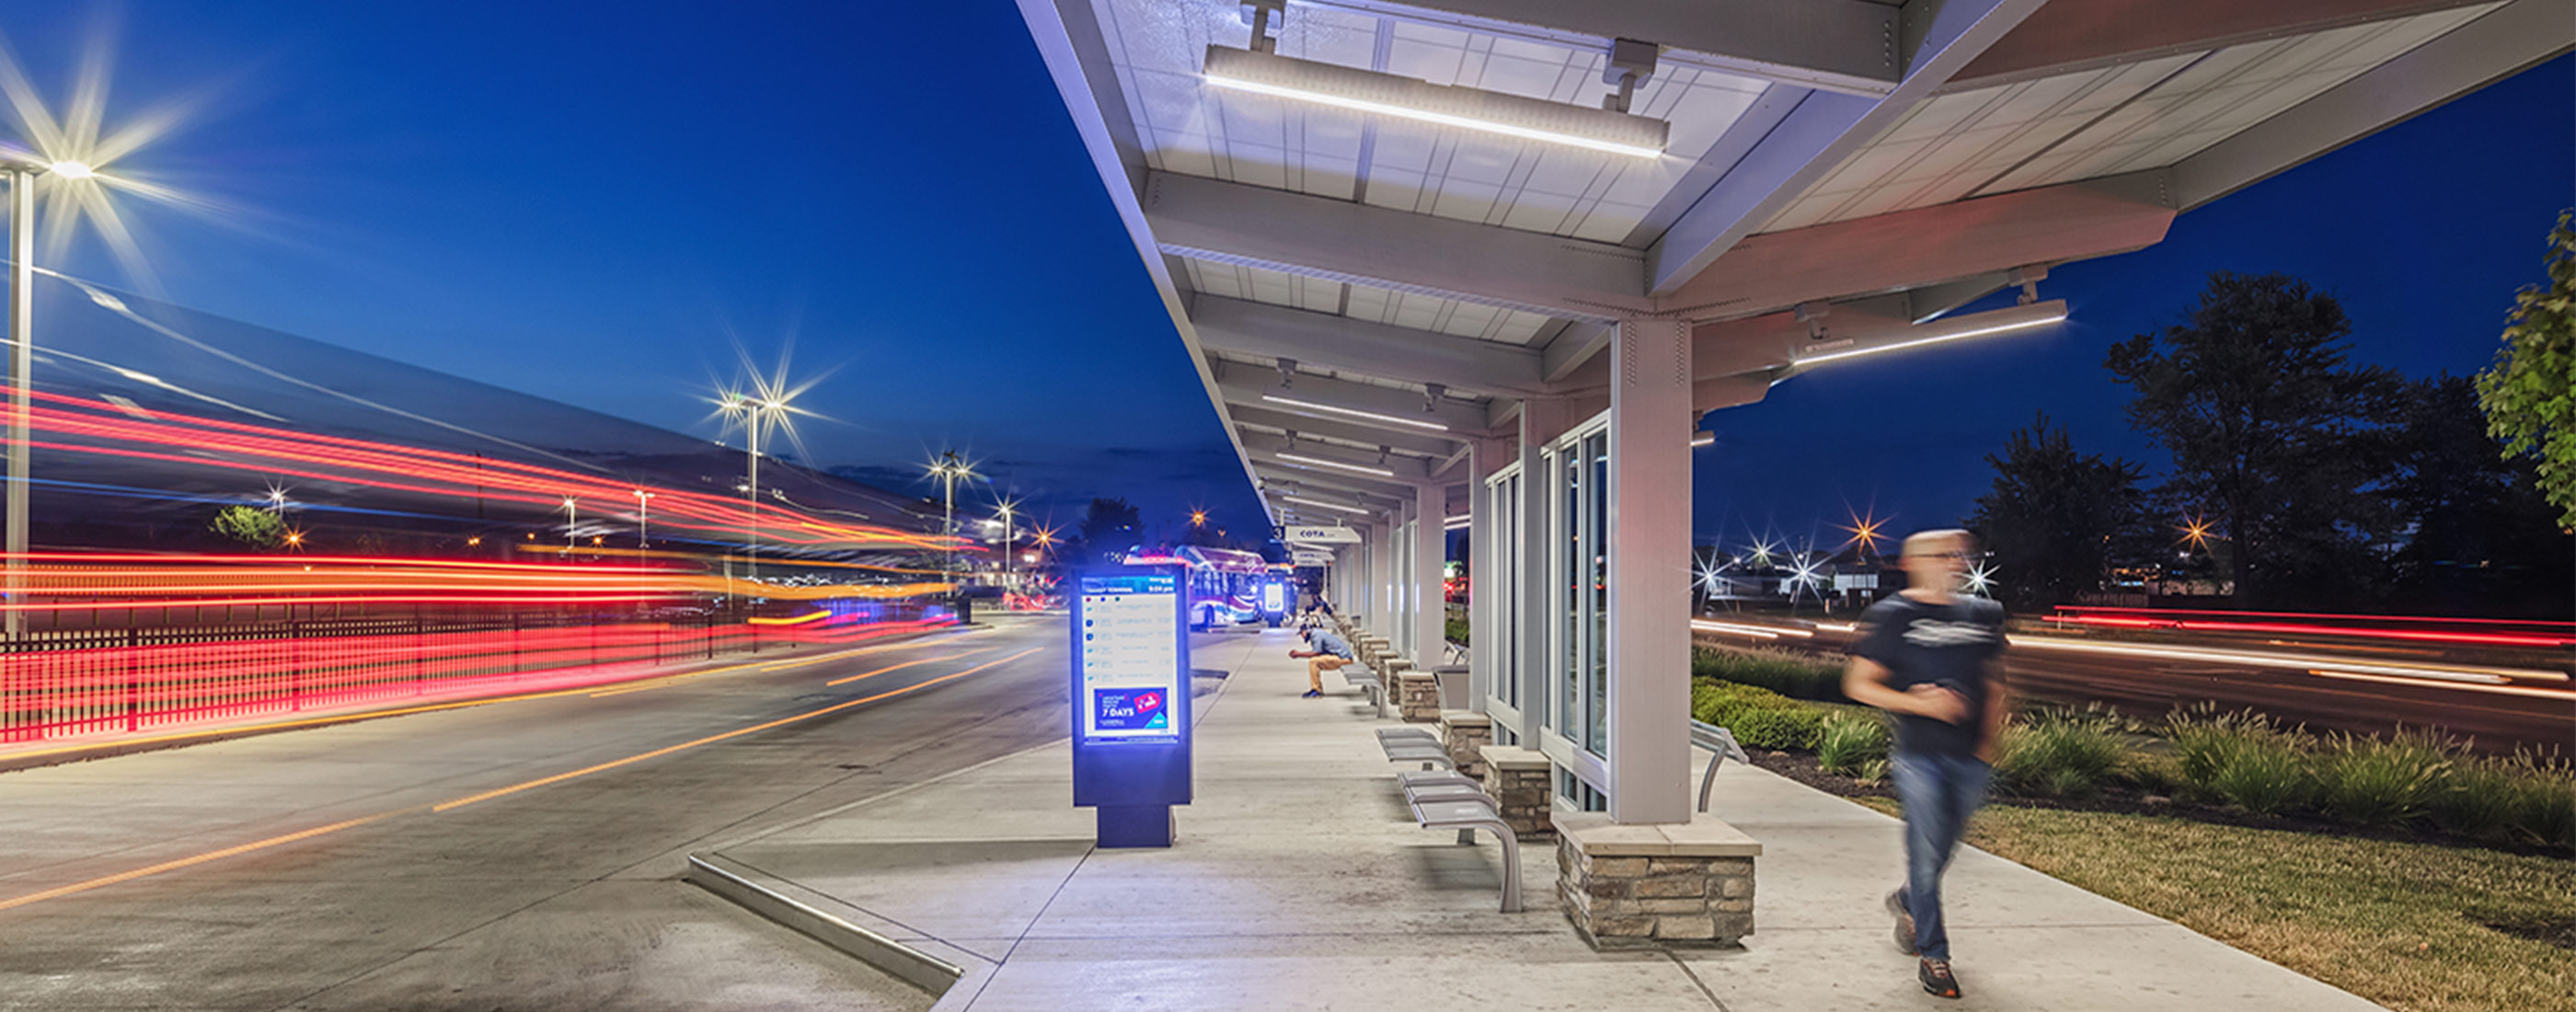 A nighttime view of COTA's bus rapid transit line.